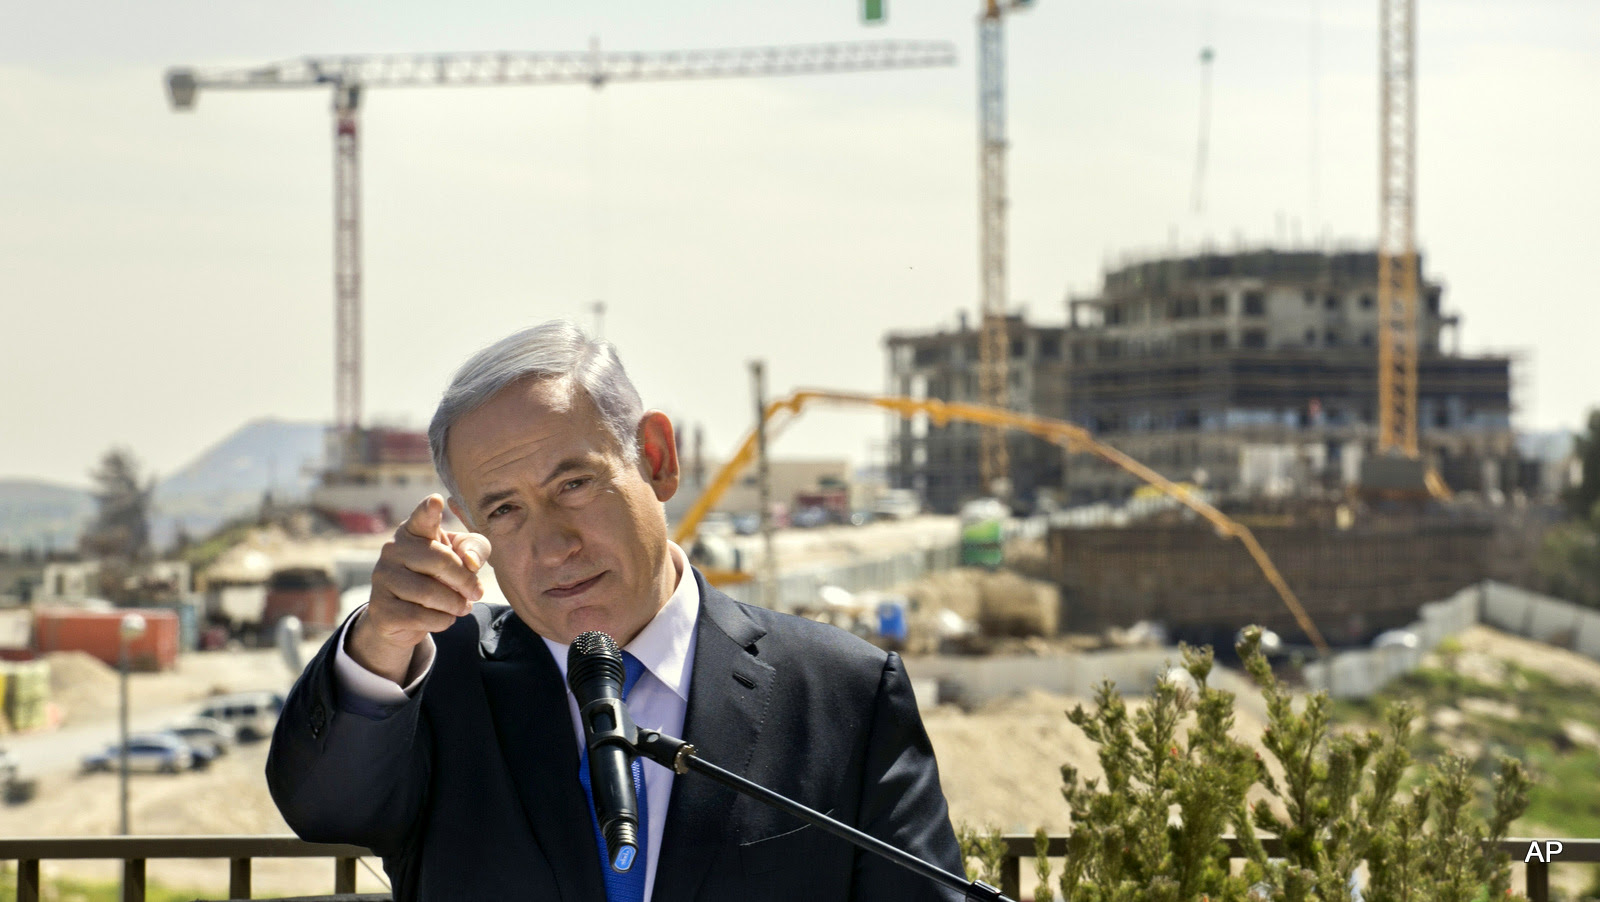 Israeli Prime Minister Benjamin Netanyahu speaks as he visits a settlement construction site in Har Homa